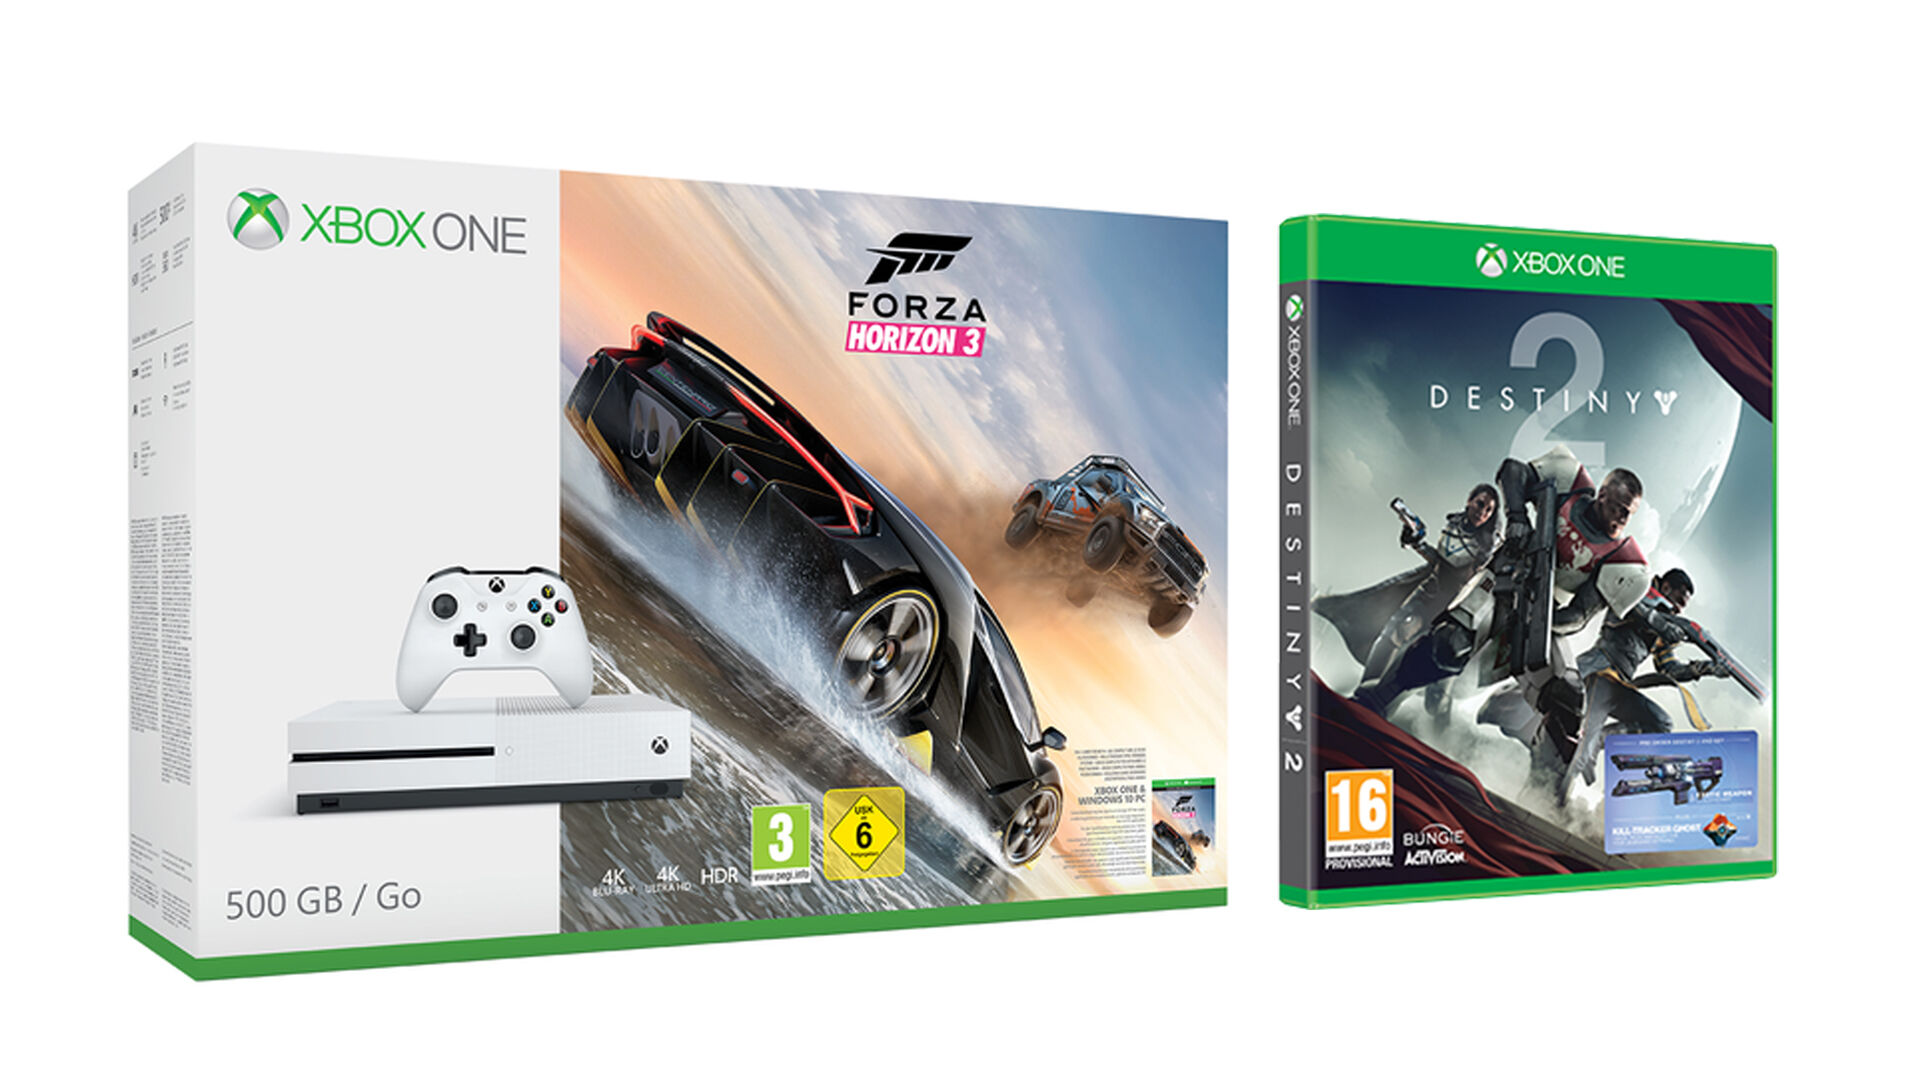 Jelly Deals: Xbox One S with Destiny 2 and Forza Horizon 3